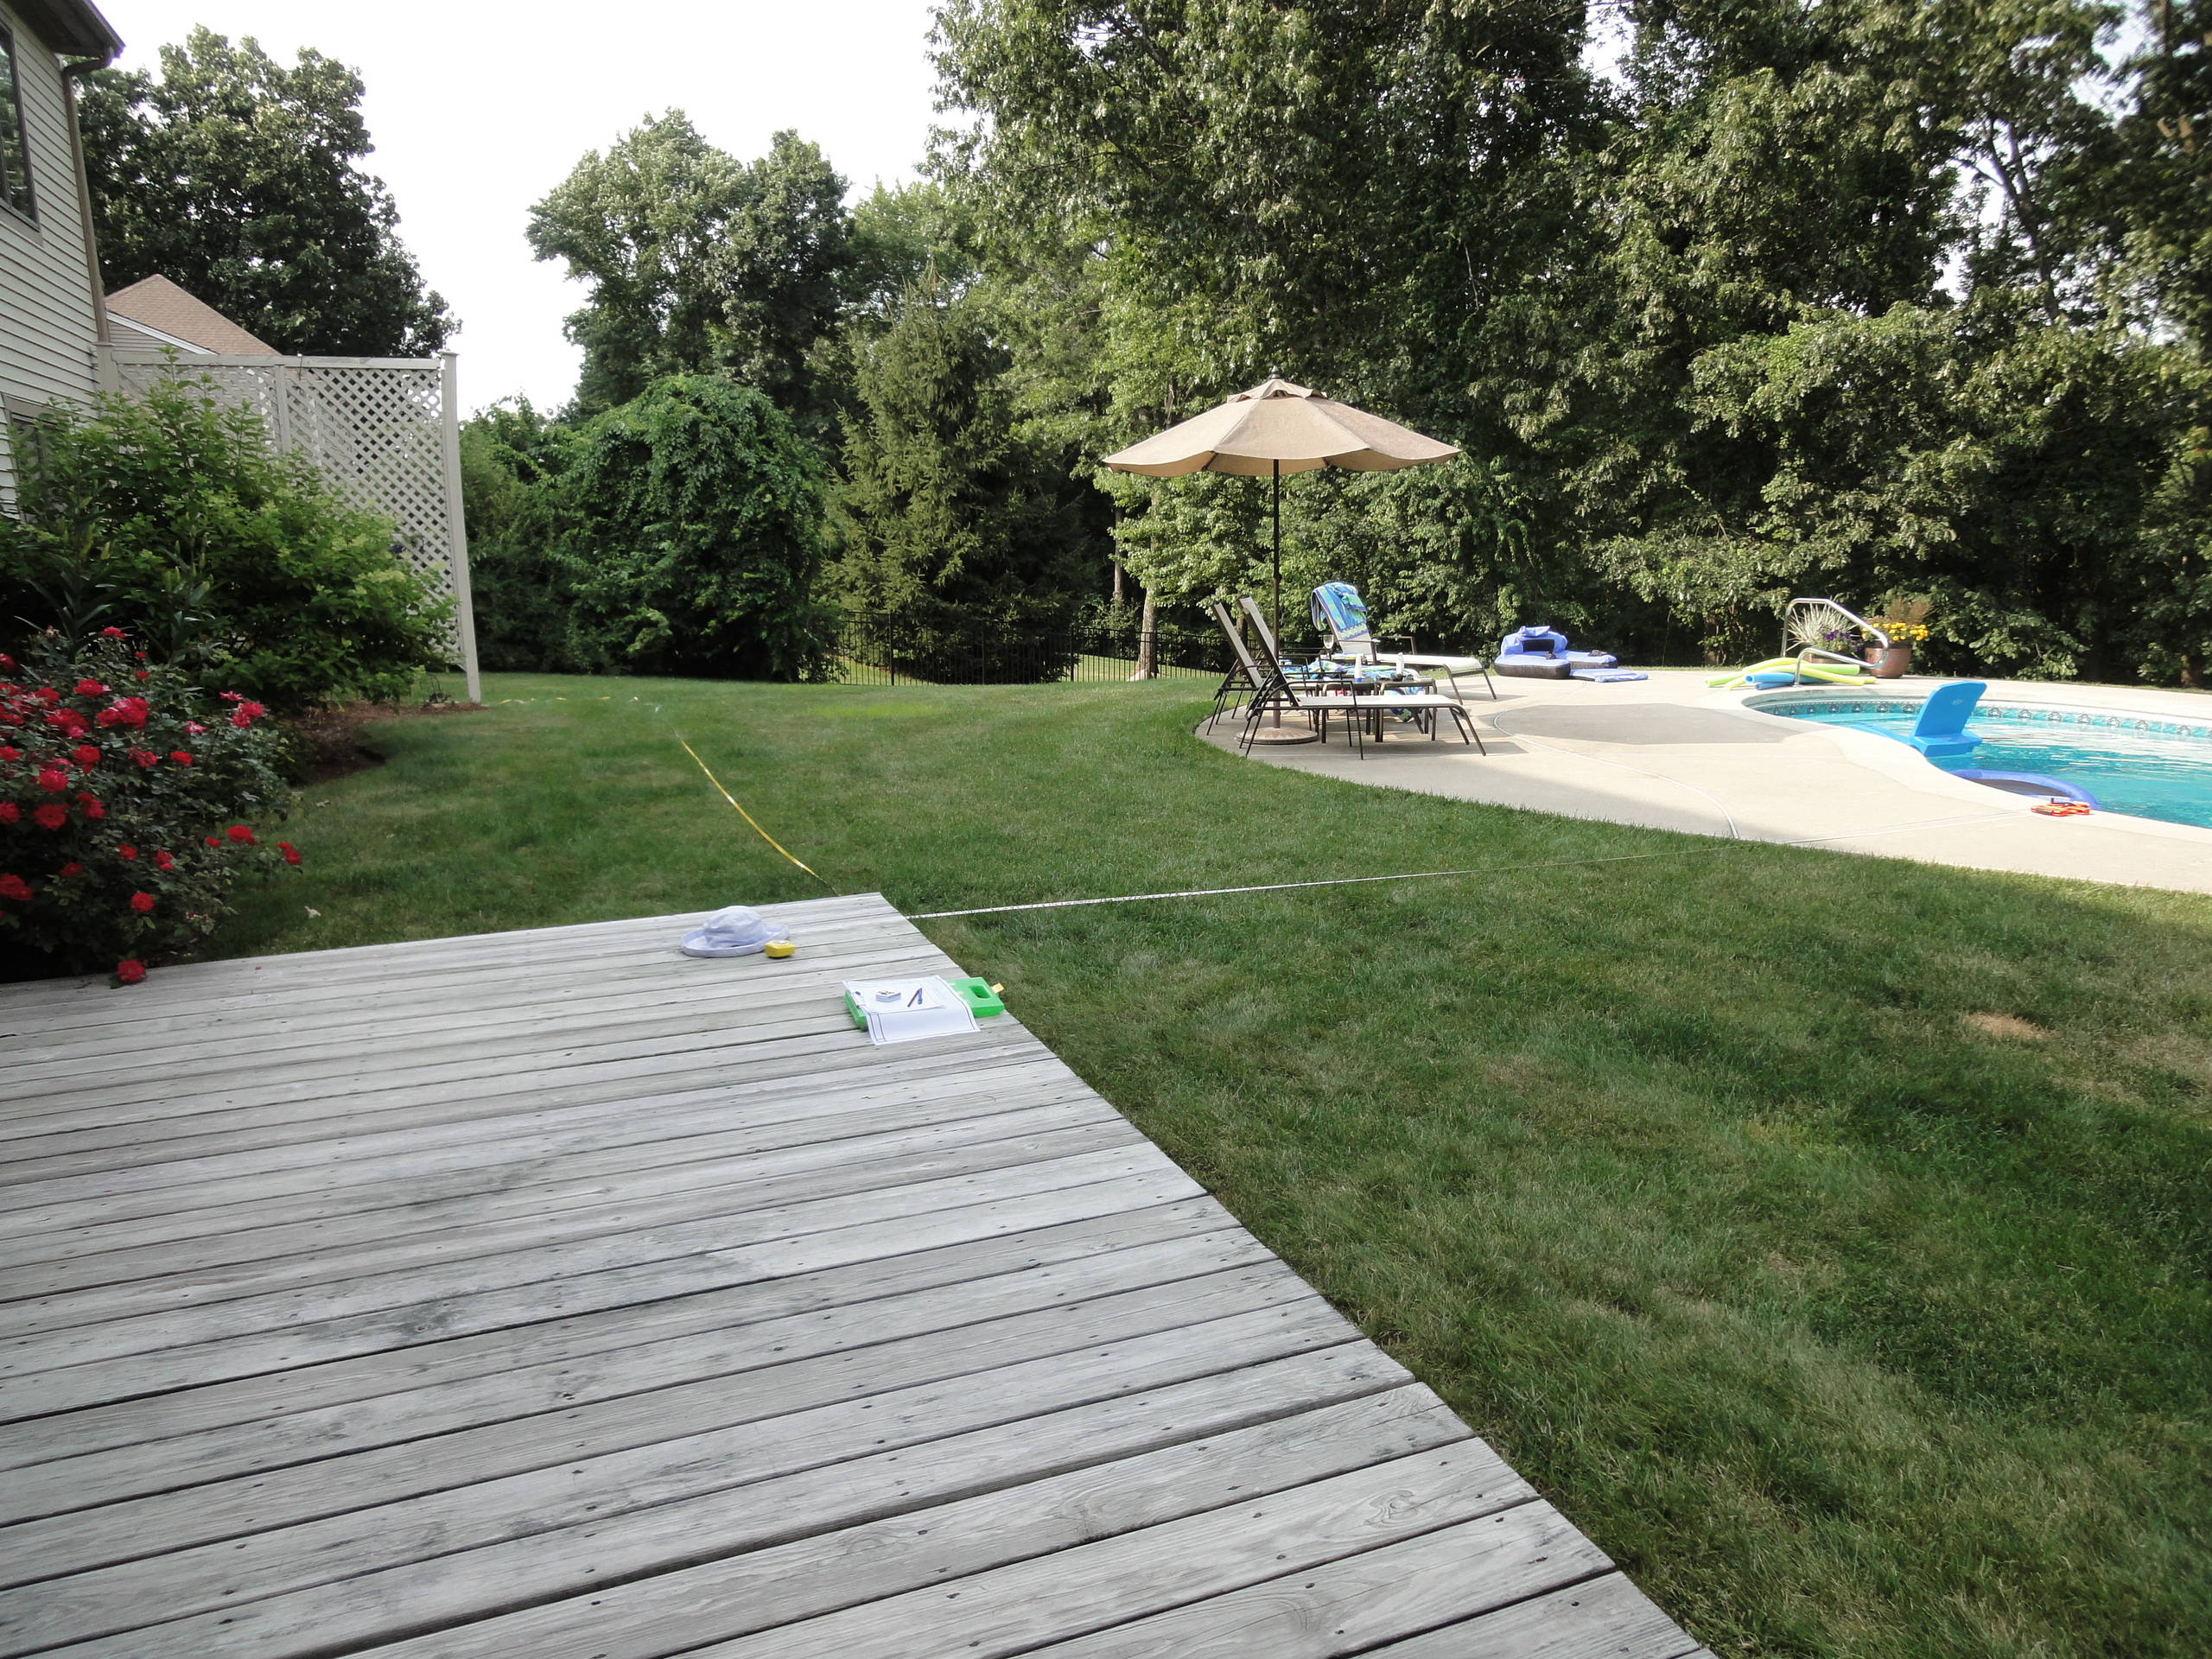 Pool Deck with Planters